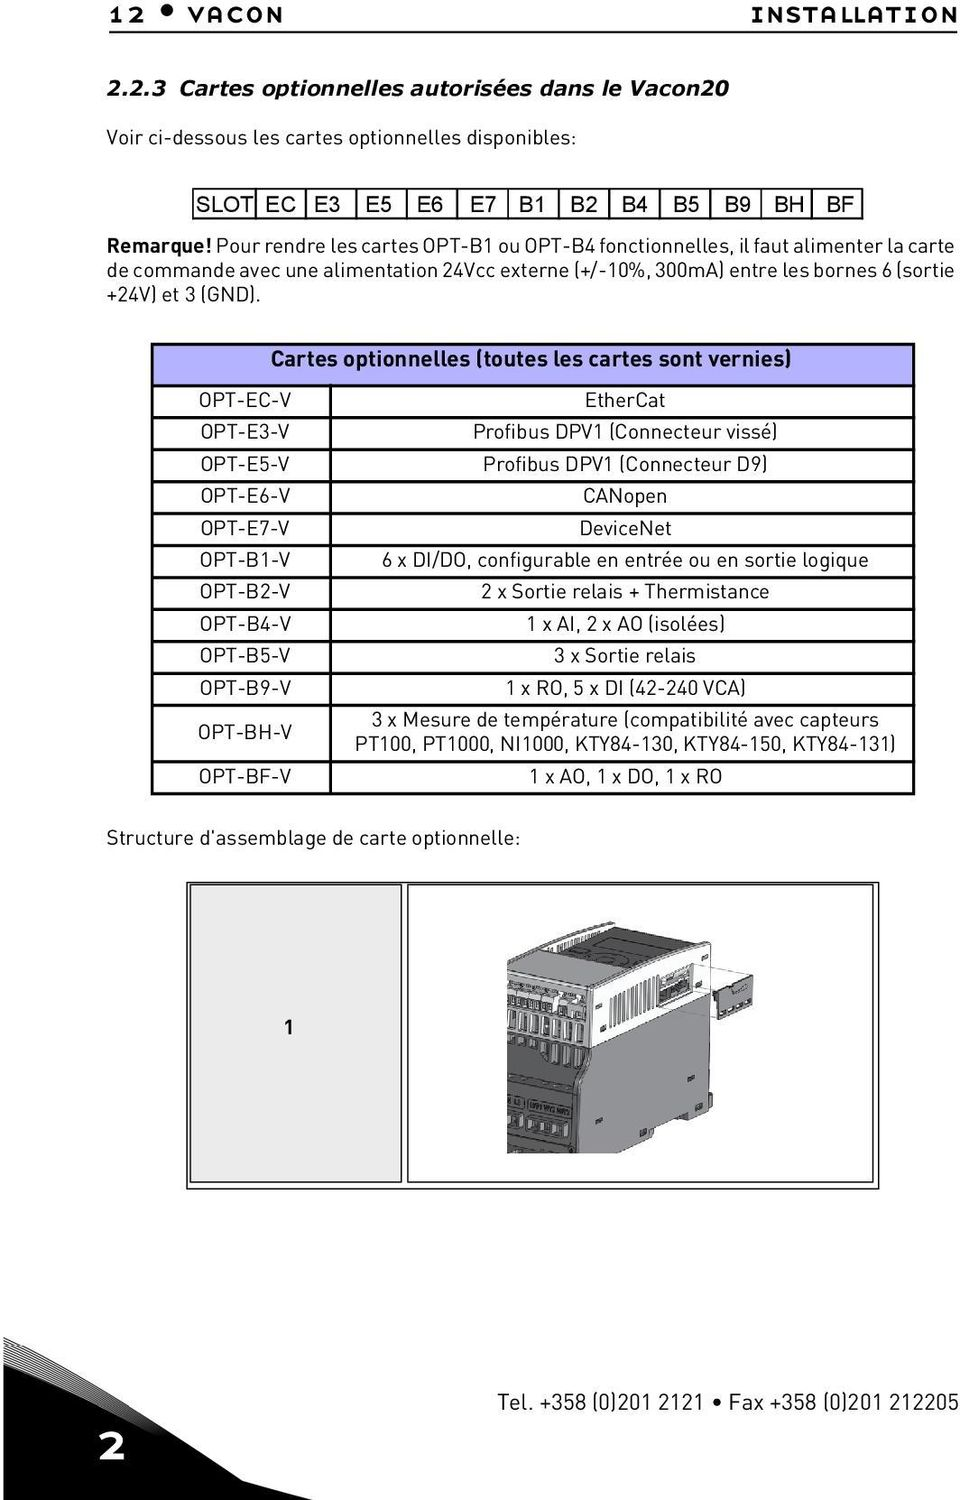 Cartes optionnelles (toutes les cartes sont vernies) OPT-EC-V EtherCat OPT-E3-V Profibus DPV1 (Connecteur vissé) OPT-E-V Profibus DPV1 (Connecteur D9) OPT-E6-V CANopen OPT-E7-V DeviceNet OPT-B1-V 6 x